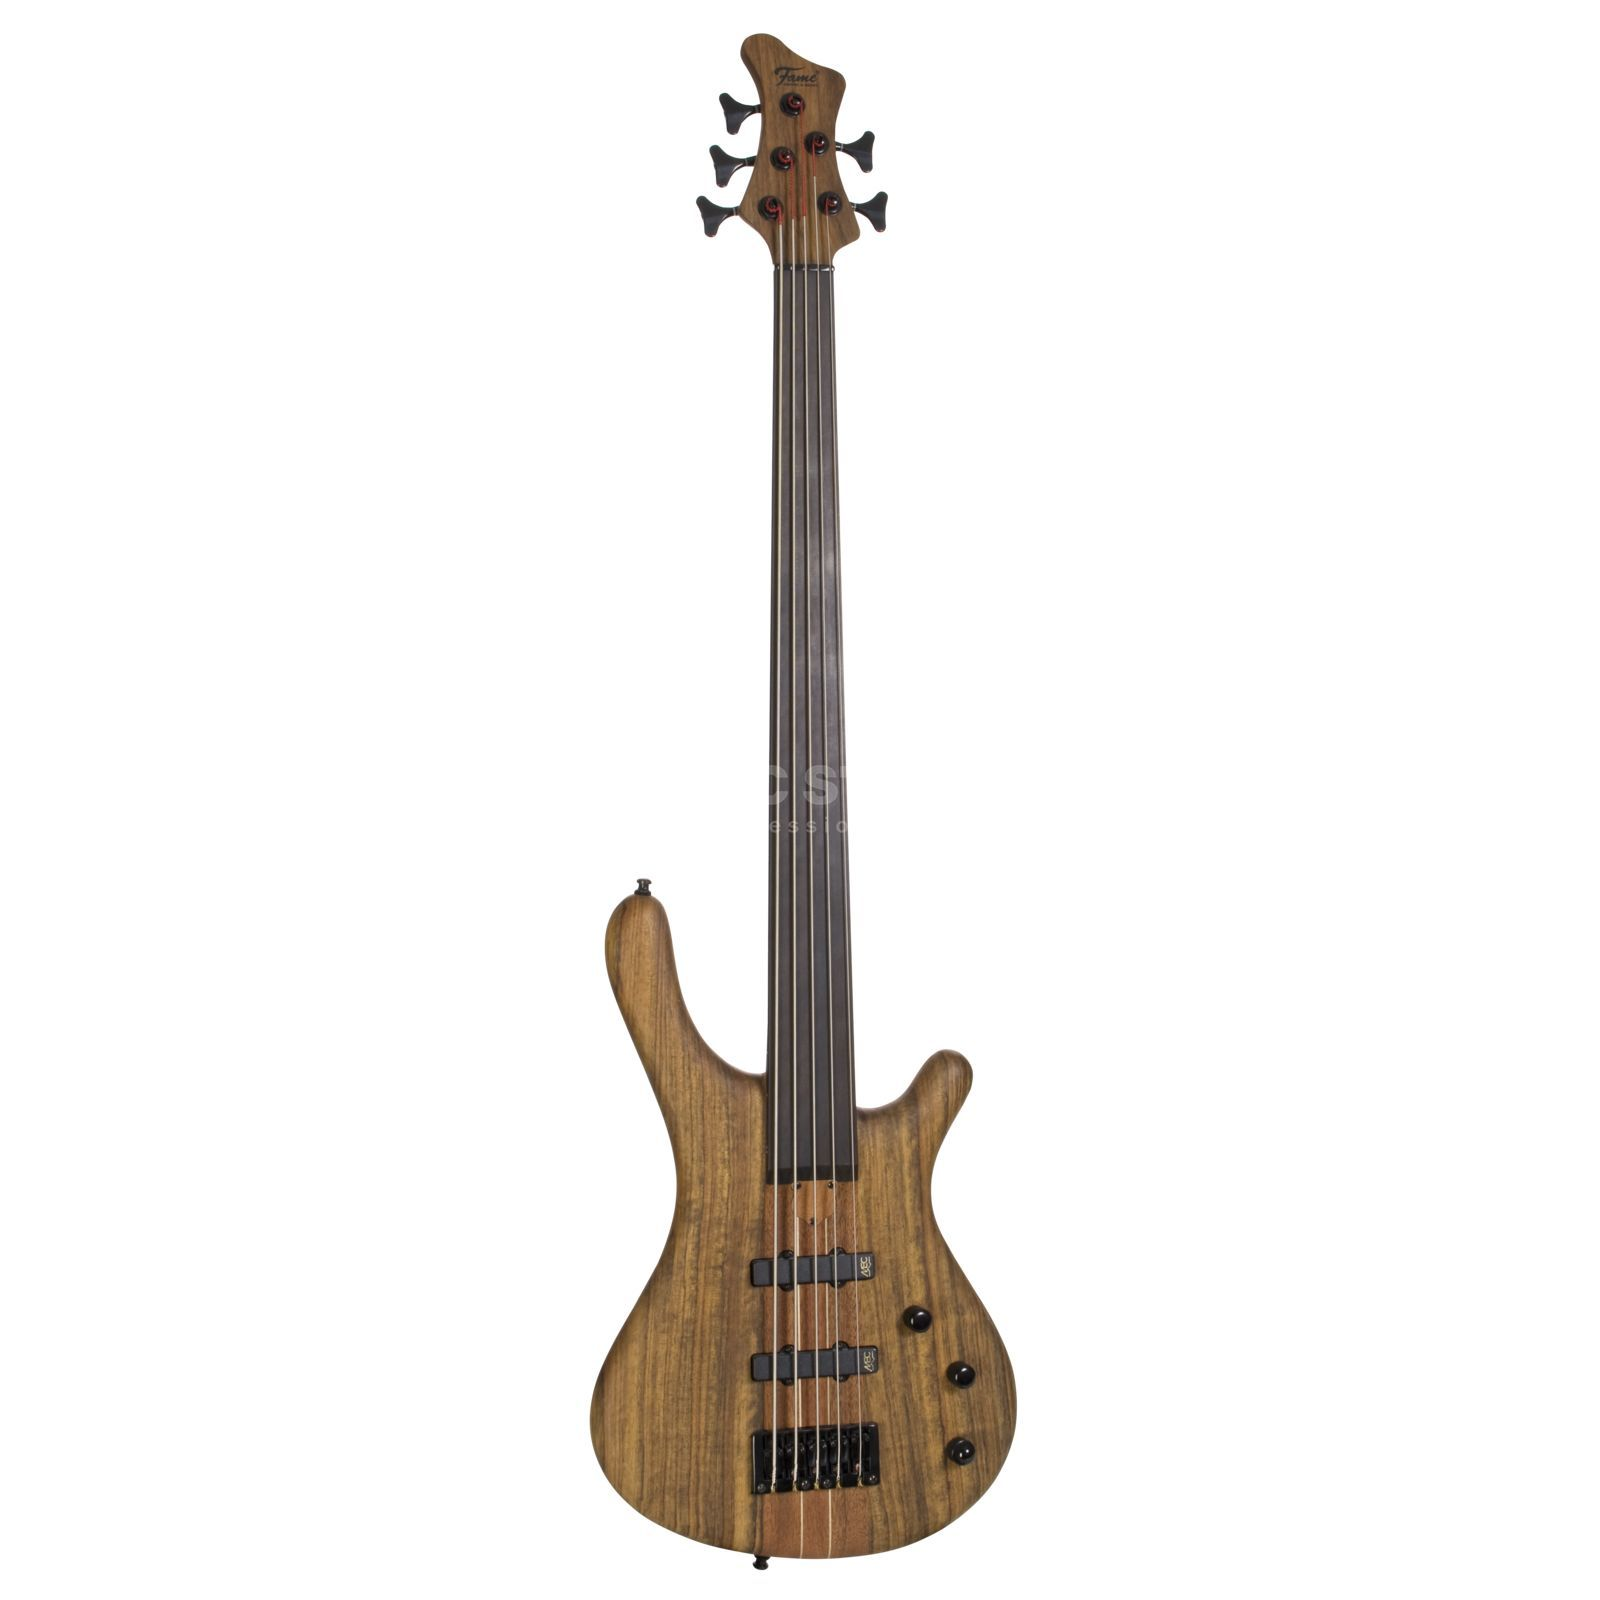 Fame Baphomet 5 NTB Fretless 5-Stri ng E-Bass Guitar, Natural Oil Изображение товара